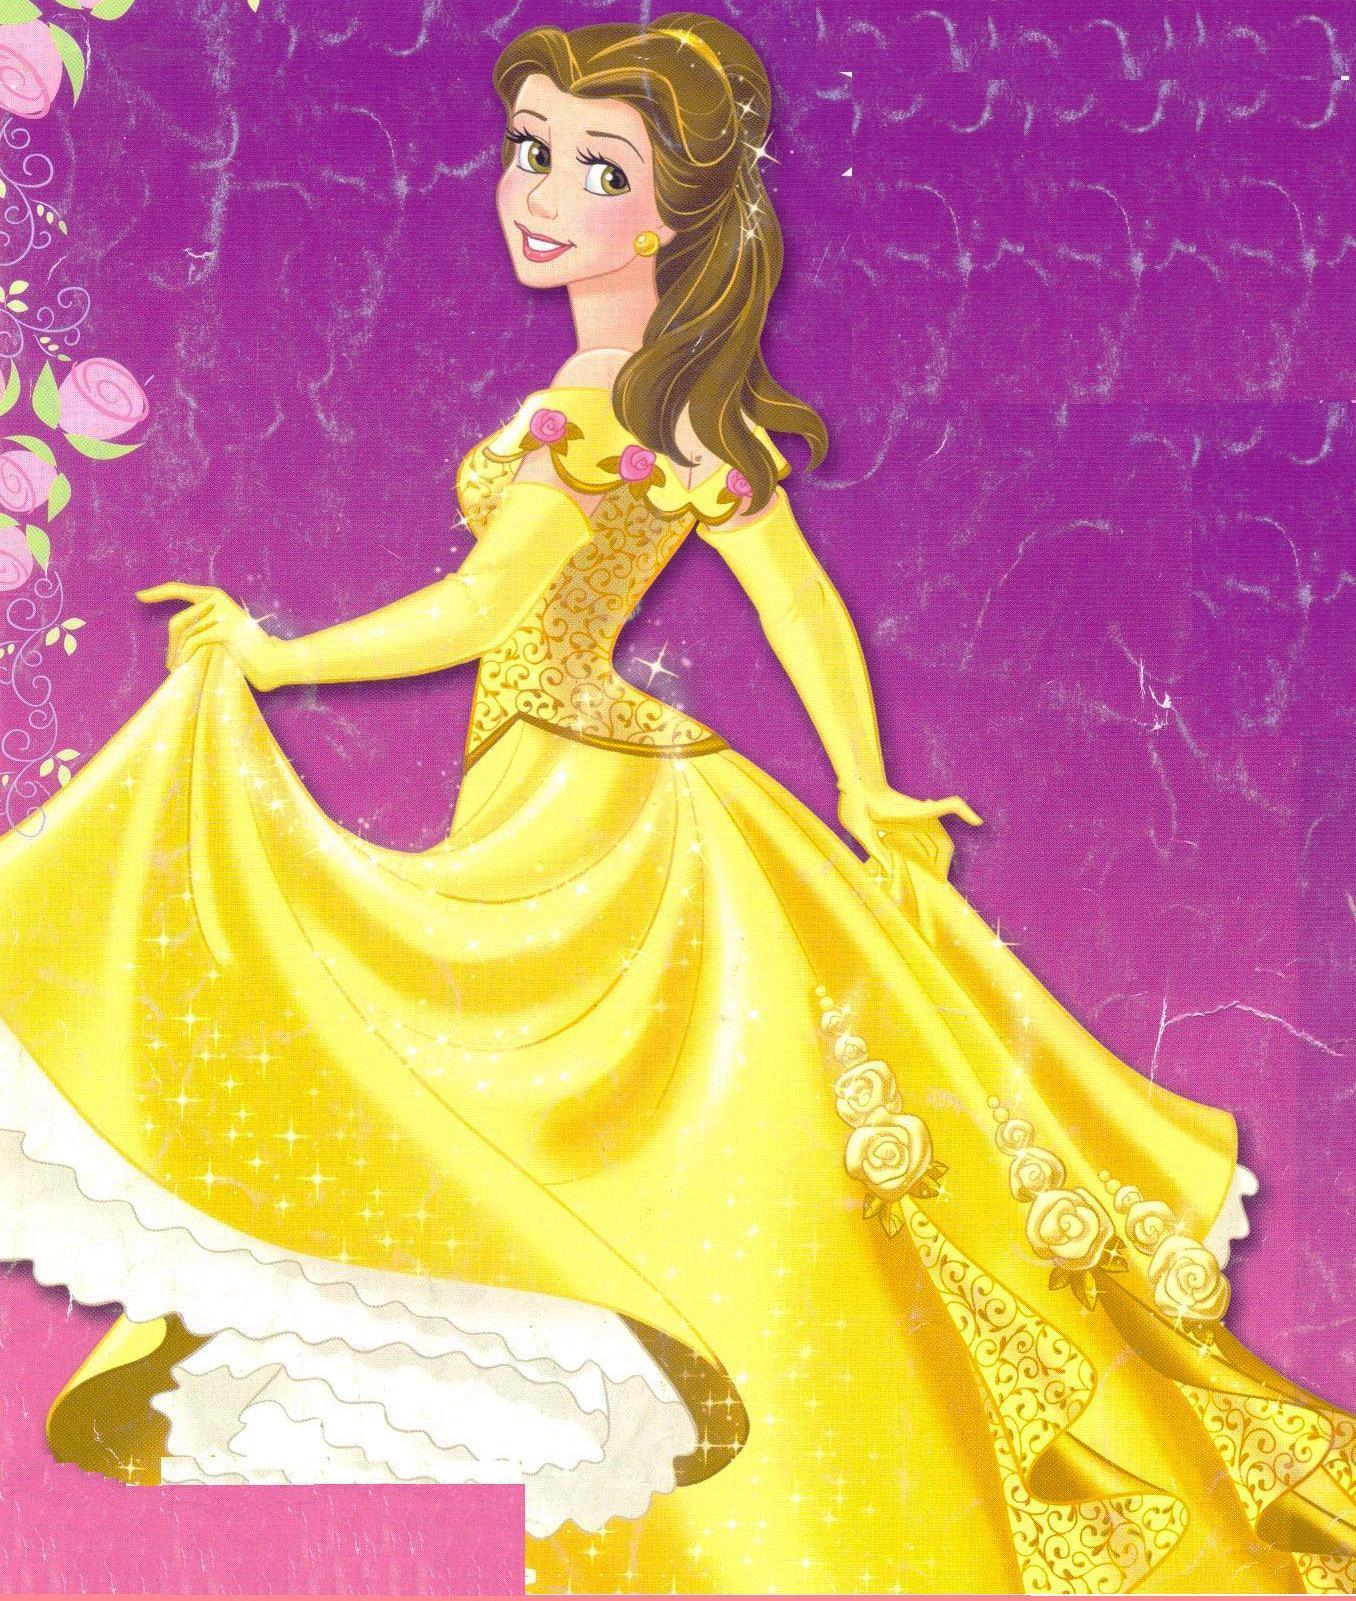 Princess Belle Disney Princess Photo 6333549 Fanpop Pictures Of Princess